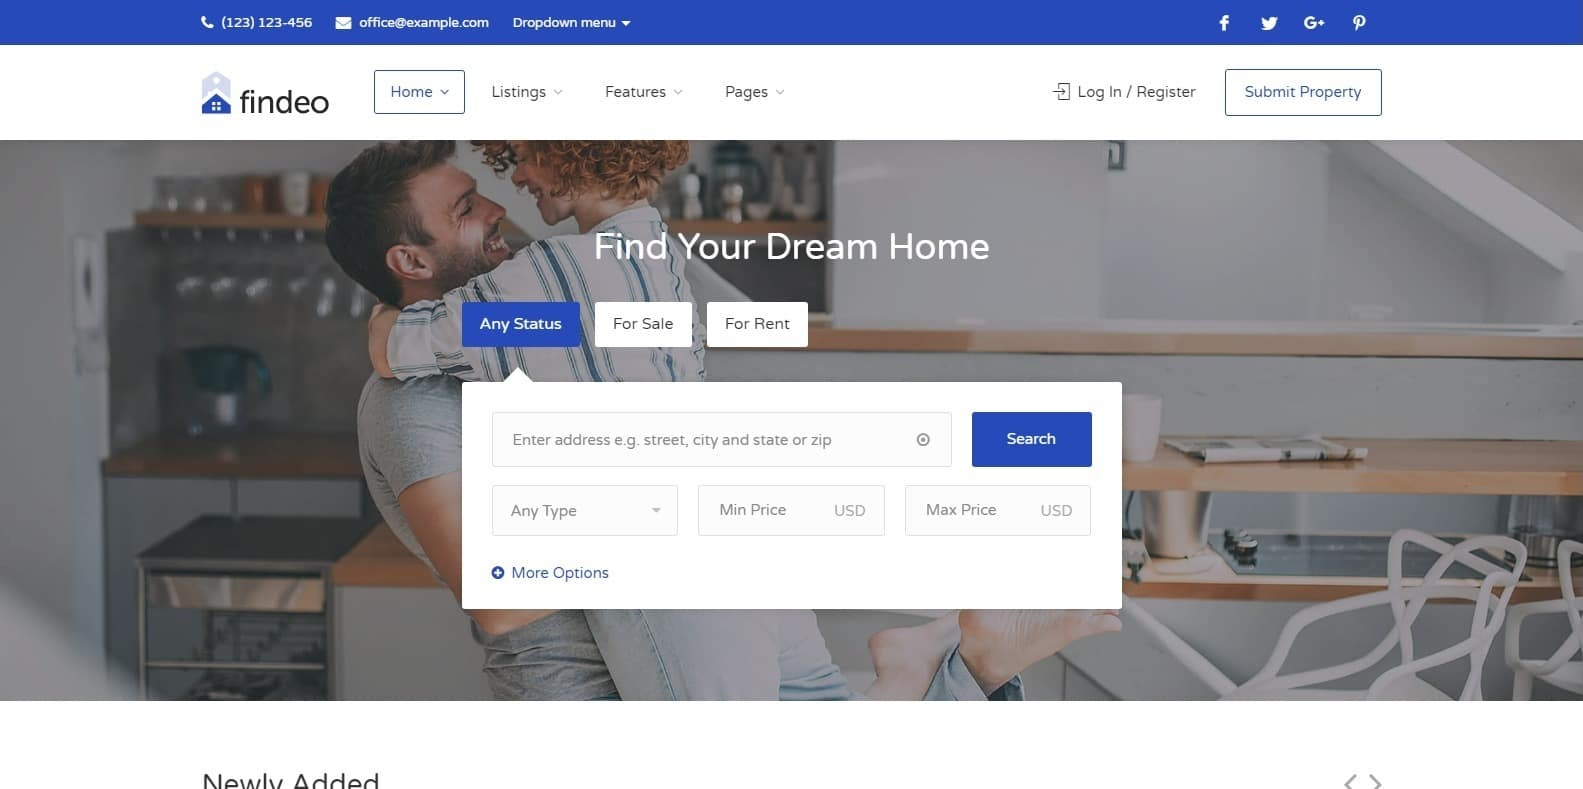 findeo-property-management-wordpress-website-template